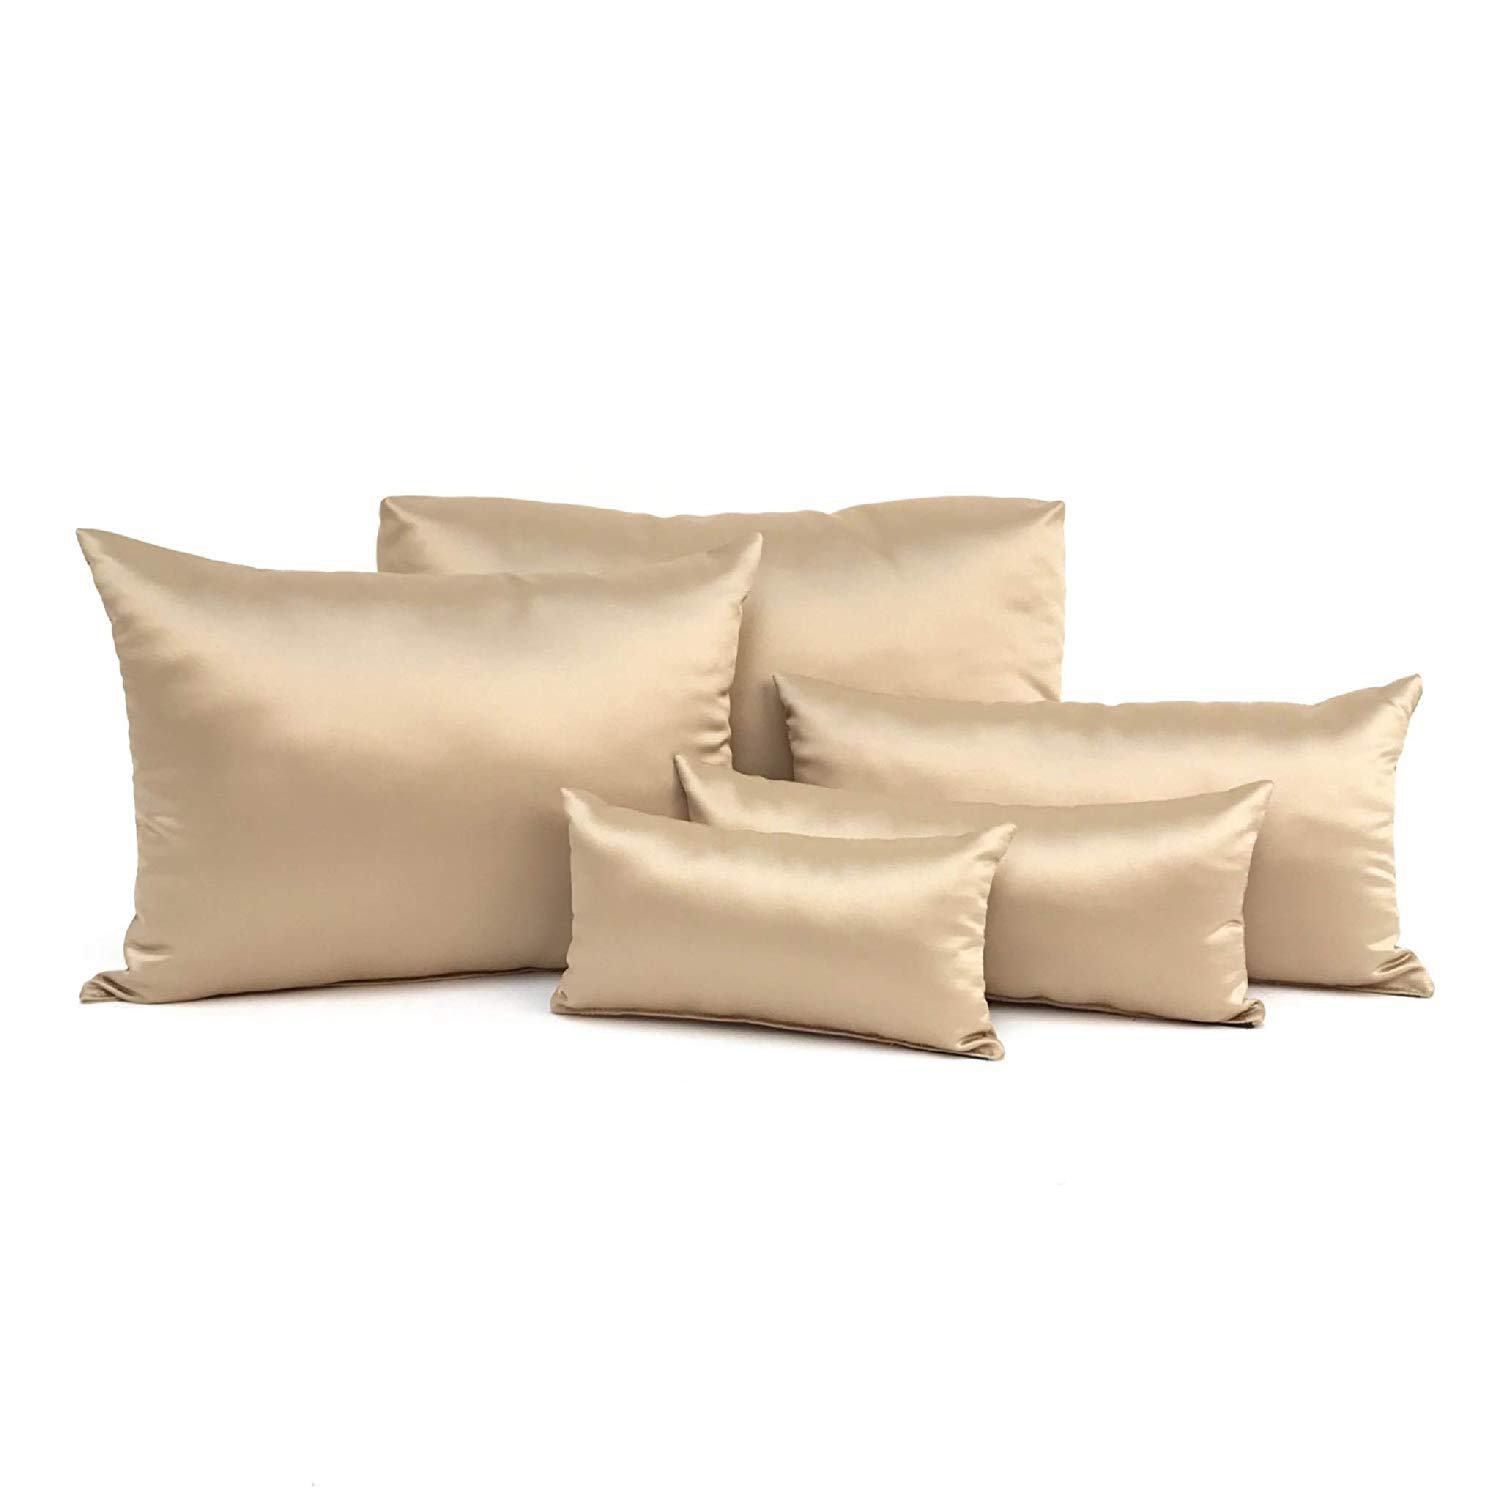 Gold Purse Pillow Inserts Sold Separately